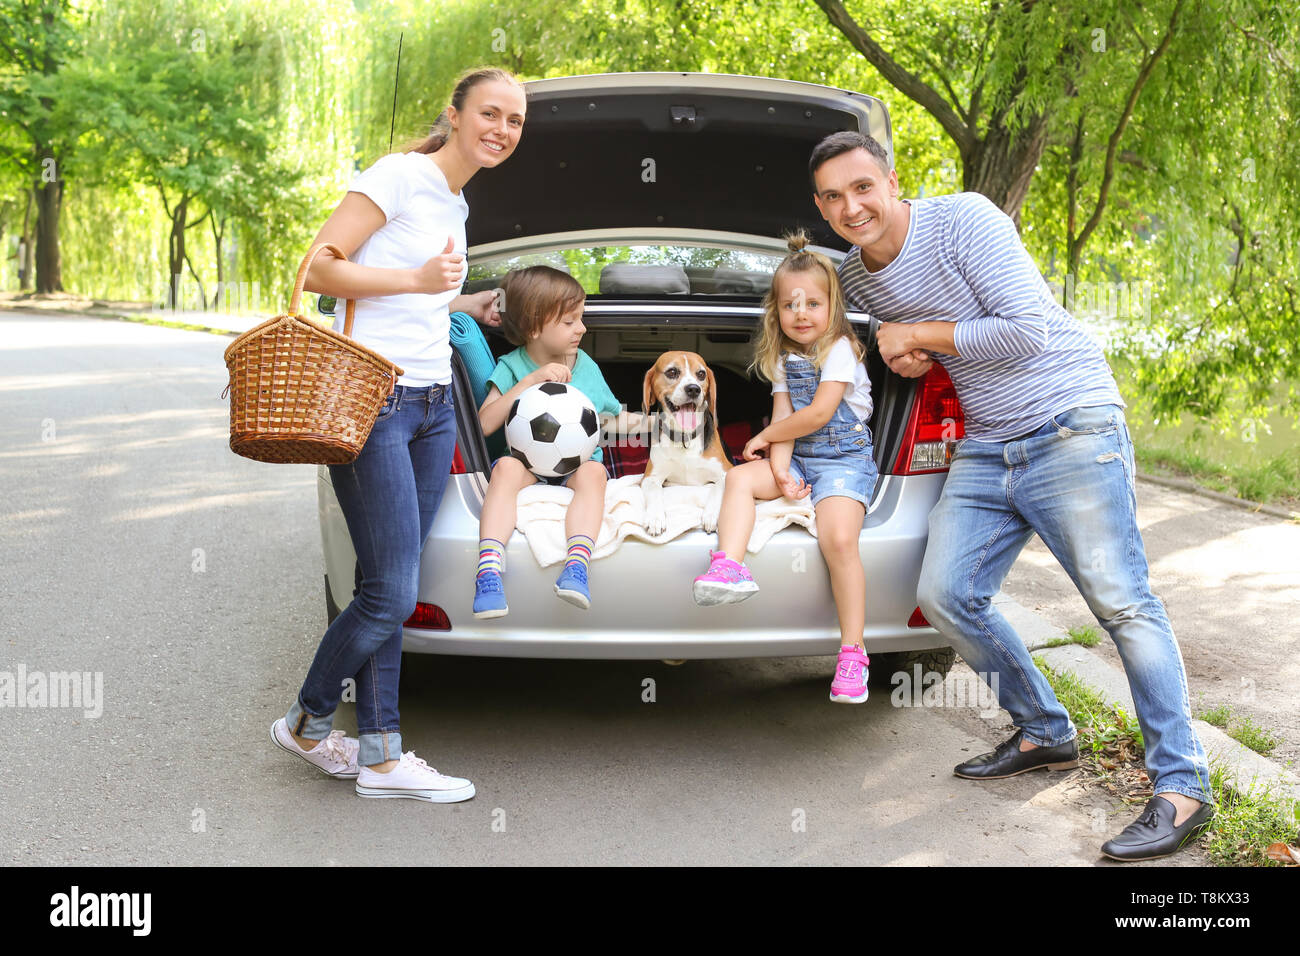 Happy family with beagle dog near car outdoors - Stock Image